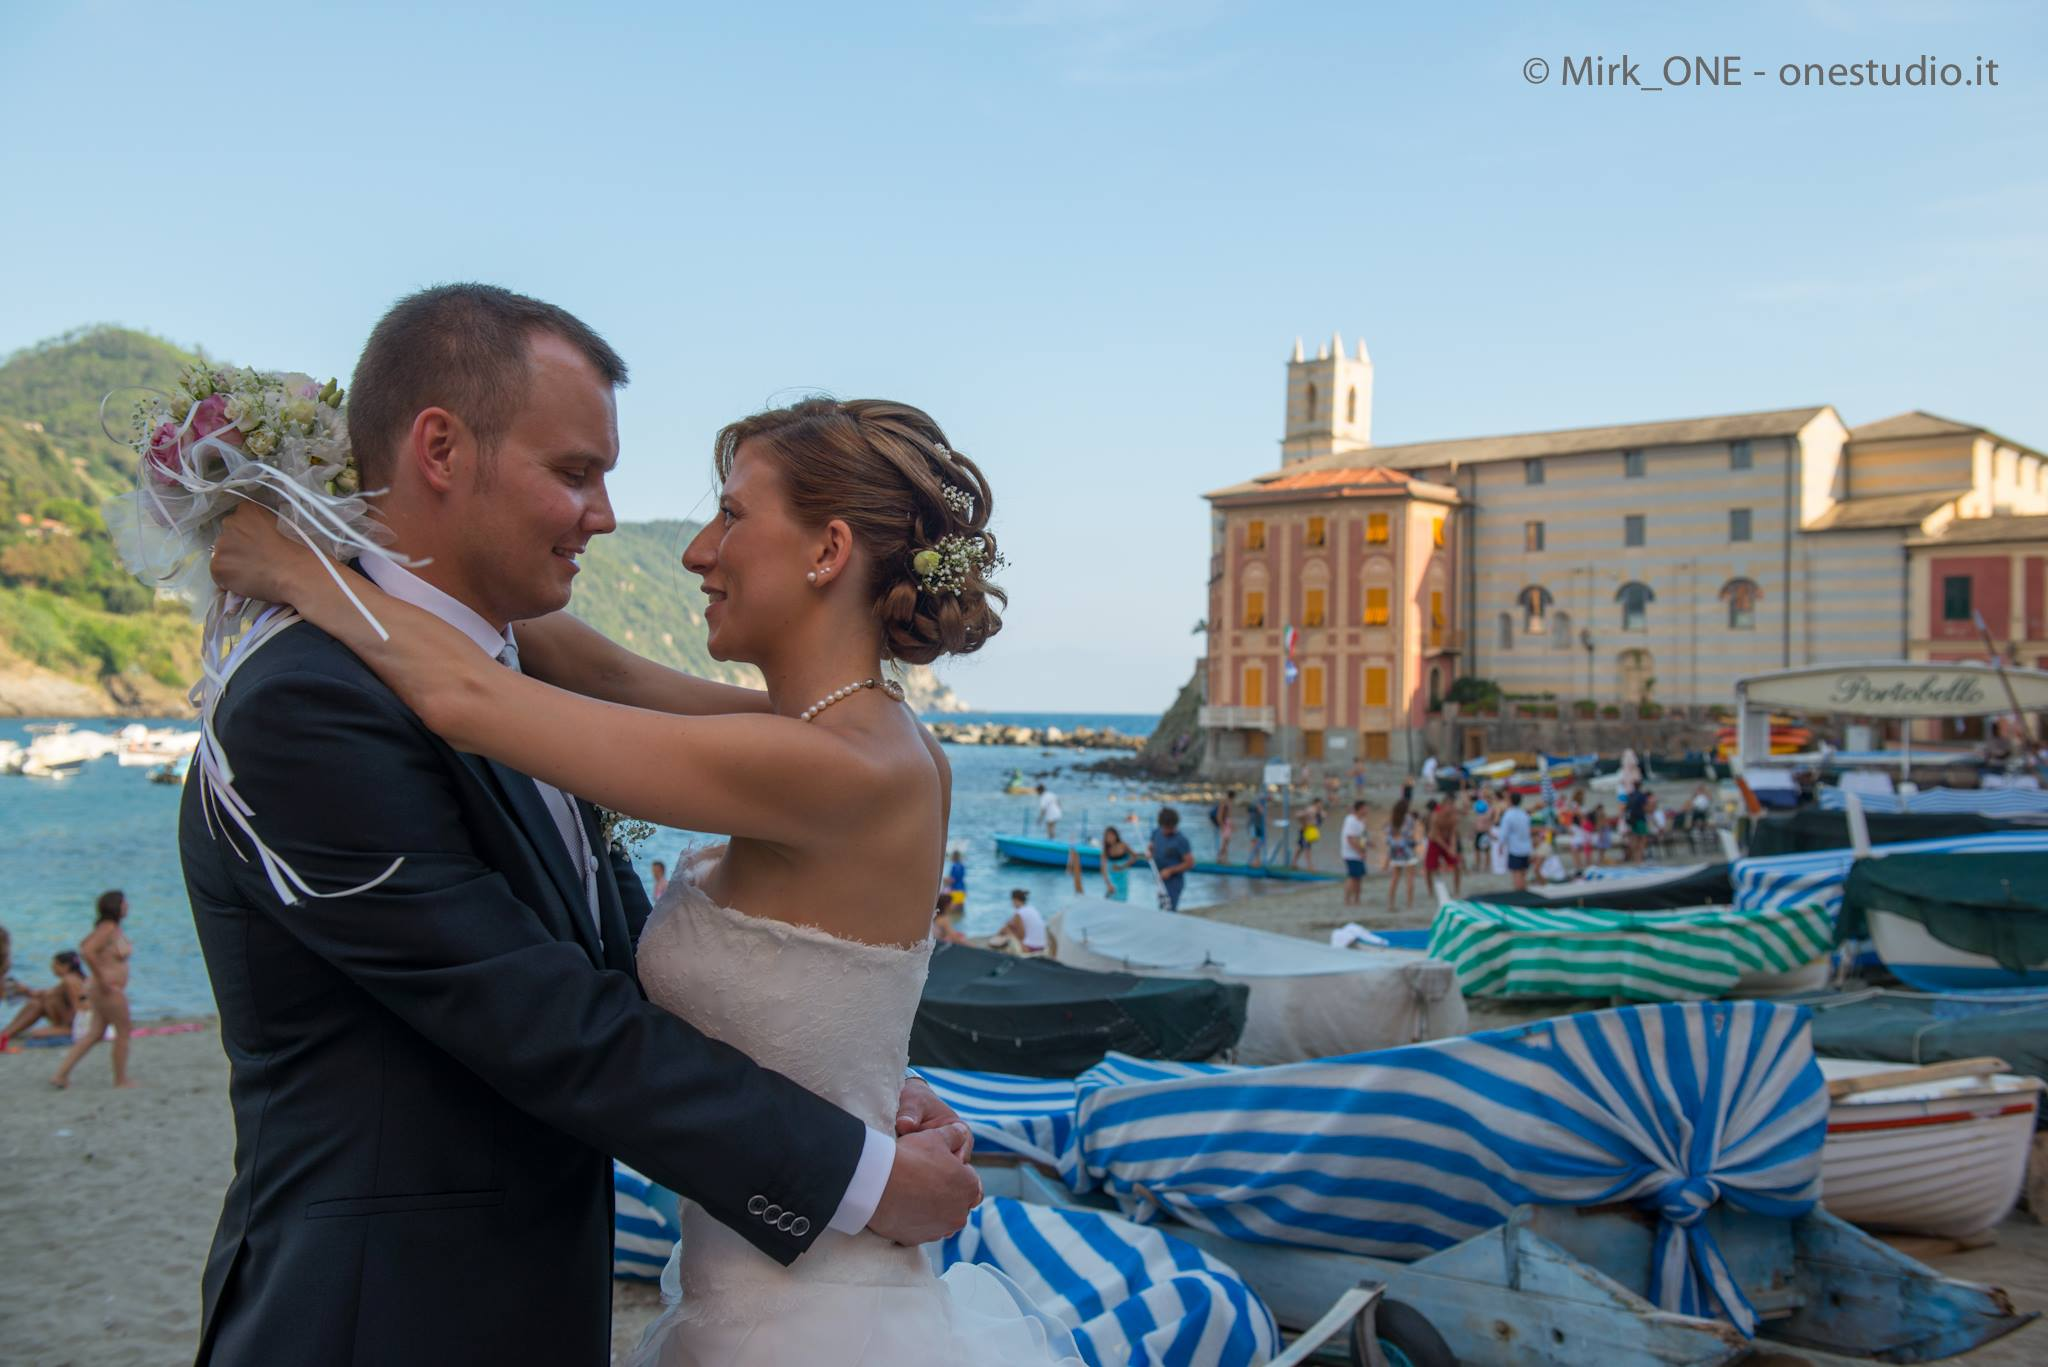 http://lnx.mirkone.it/wp-content/uploads/2015/07/mirk_ONE-fotografo-matrimonio-00834.jpg